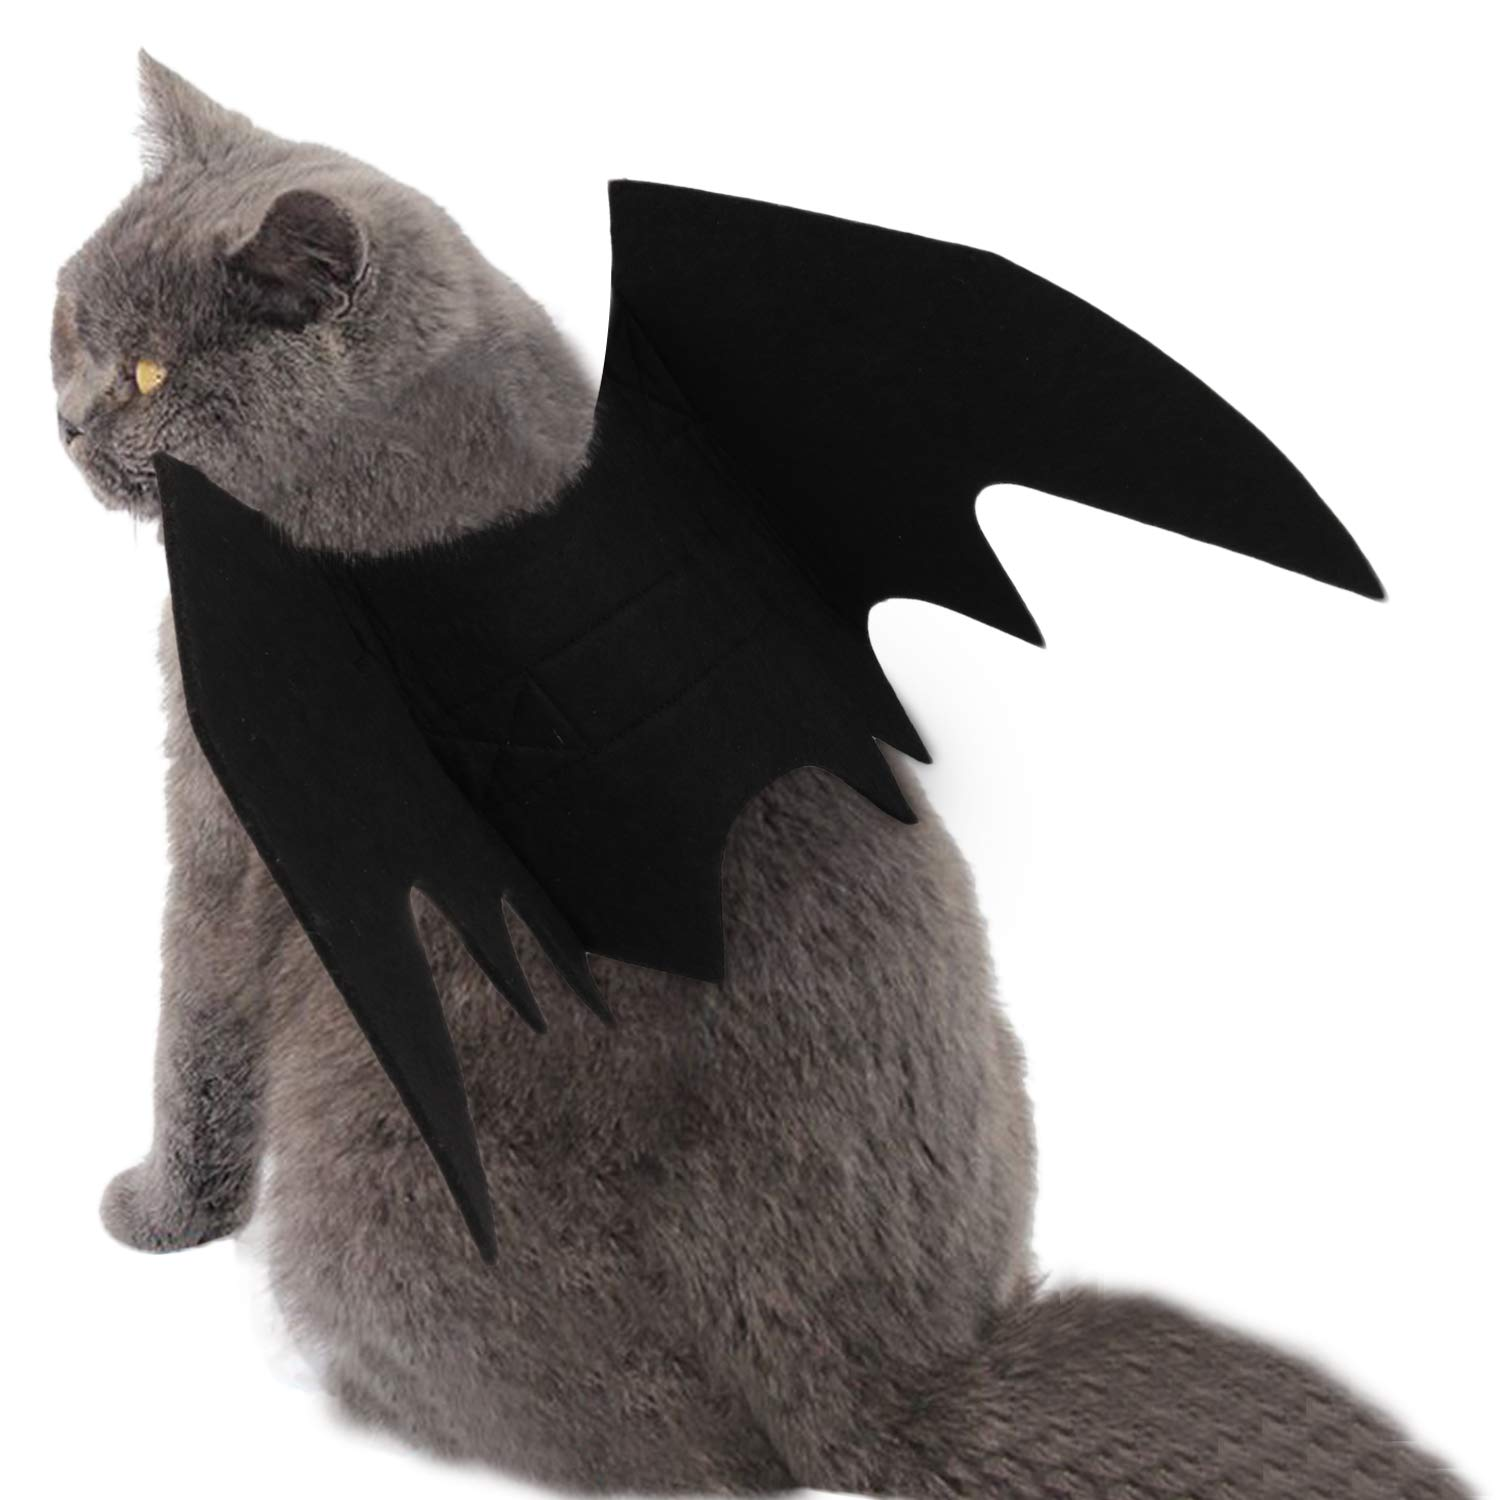 Legendog Cat Halloween Costume,Pets Costumes Clothes Halloween Pumpkins Bell Bat Wings Cat Bat Costume Halloween cat outfit for Puppy Dog Cat